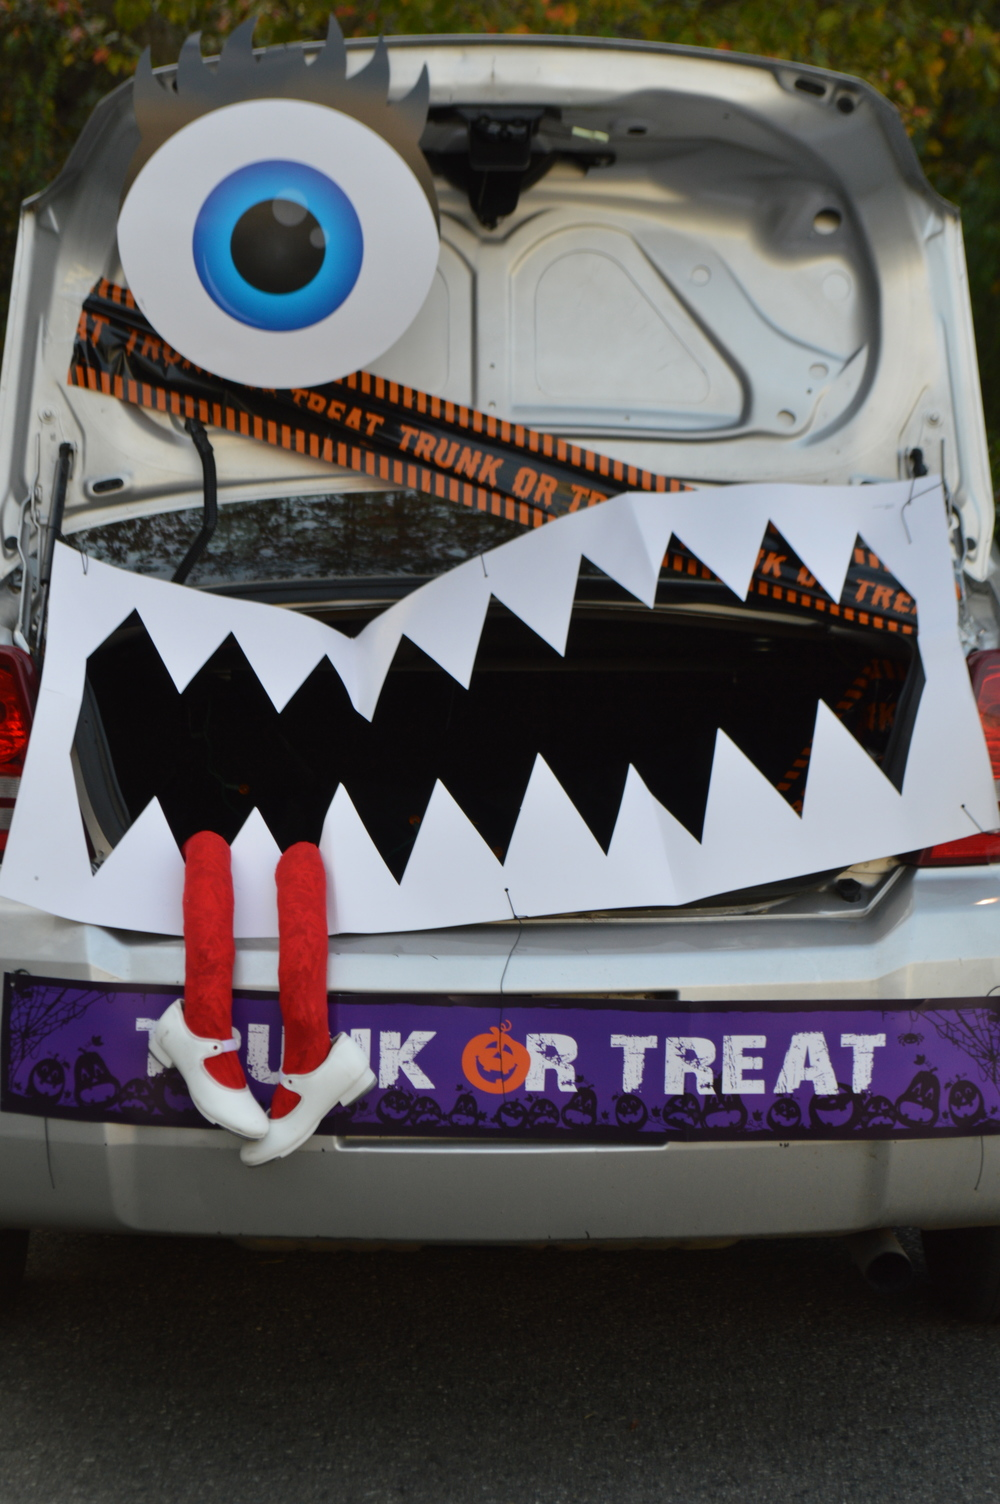 Look Out! It's TRUNK OR TREAT!